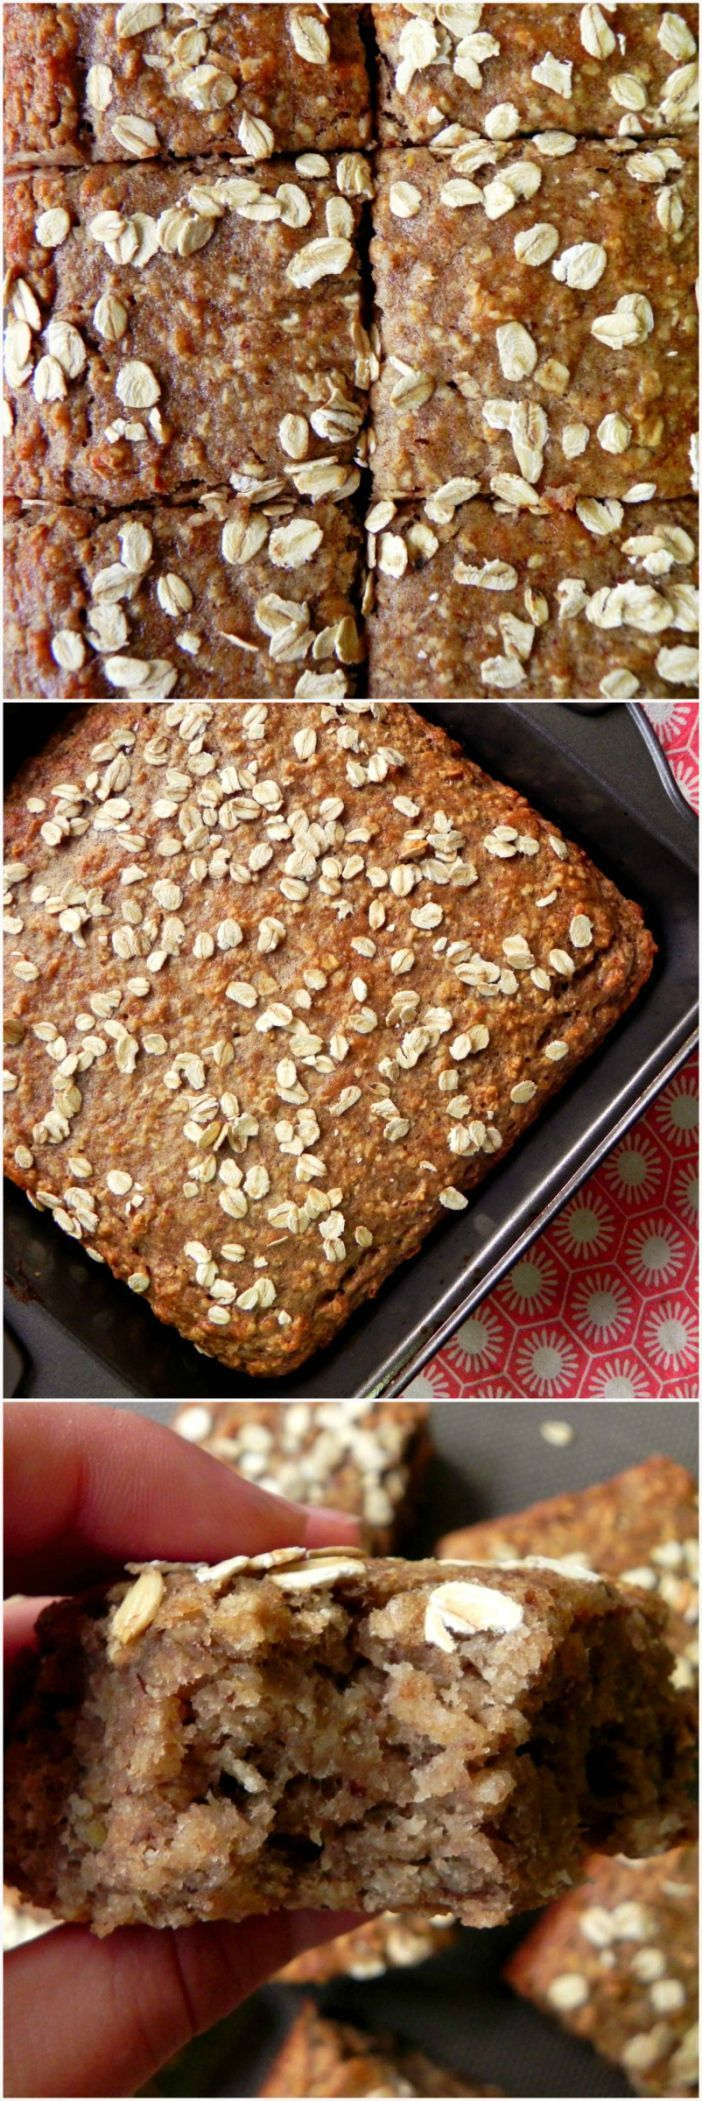 Banana & Oat Breakfast Cake with FIVE bananas! #HEALTHY #VEGAN Oatmeal Banana Bread - Ceara's Kitchen